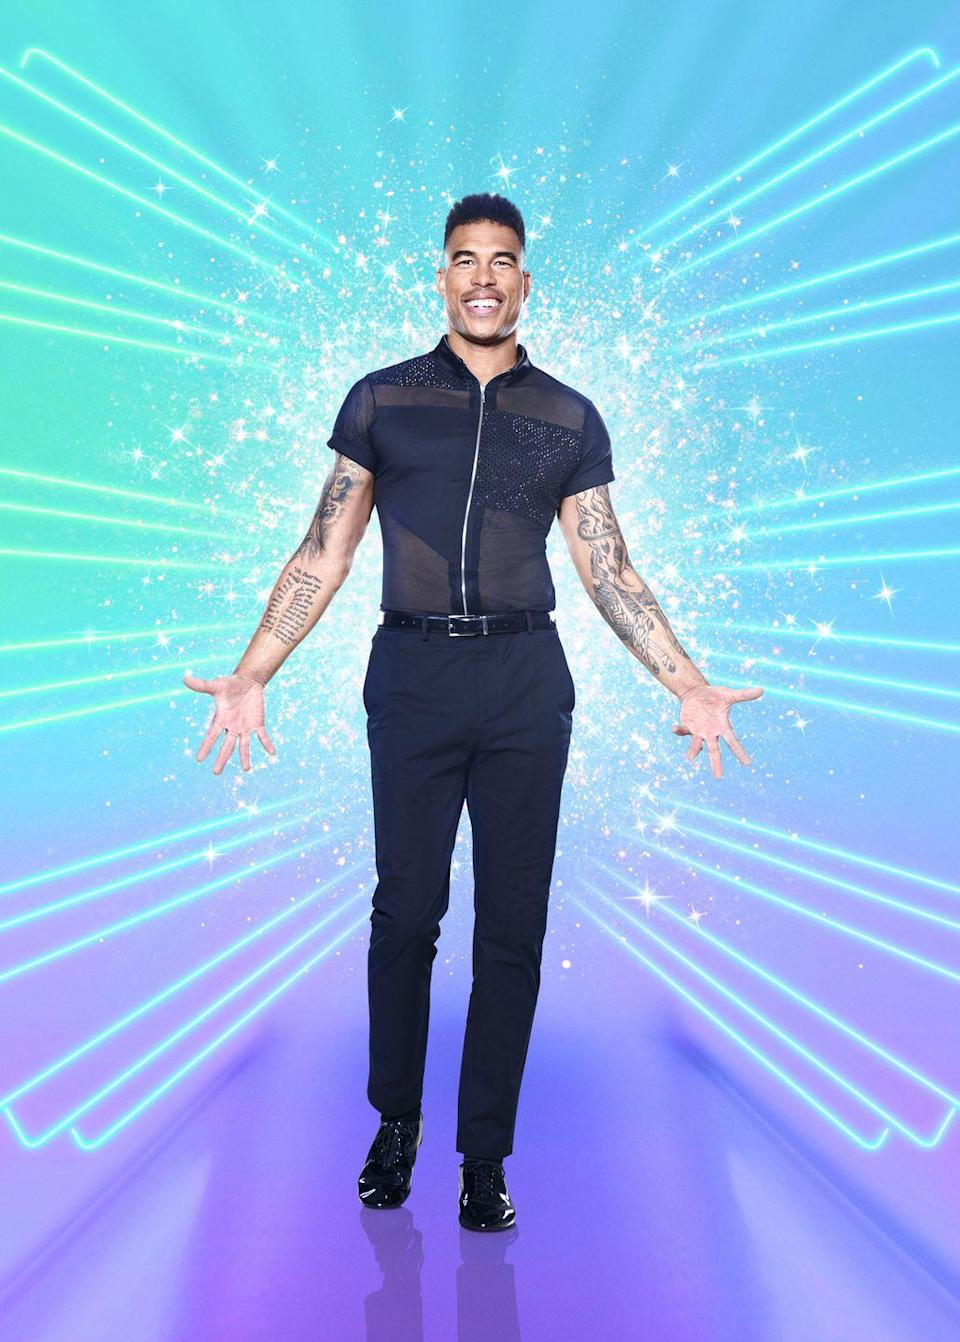 """<p><strong>Who is he? </strong>42-year-old Jason is a former NFL American football player and former boyfriend of Girls Aloud's Nadine Coyle.</p><p><strong>What's he said about Strictly? </strong>""""I am thrilled. I'm a huge fan of the show, I've been watching it since I came to this country, so it's time for me to do something cool to impress my daughter, now that she can watch me perform!""""</p><p>He added: """"I've always, as an athlete, liked to lock into the present moment you know, be in the zone, and I think this show will give me the opportunity to do the same thing I did when I was playing - perform at a high level and learn from the best.""""</p>"""